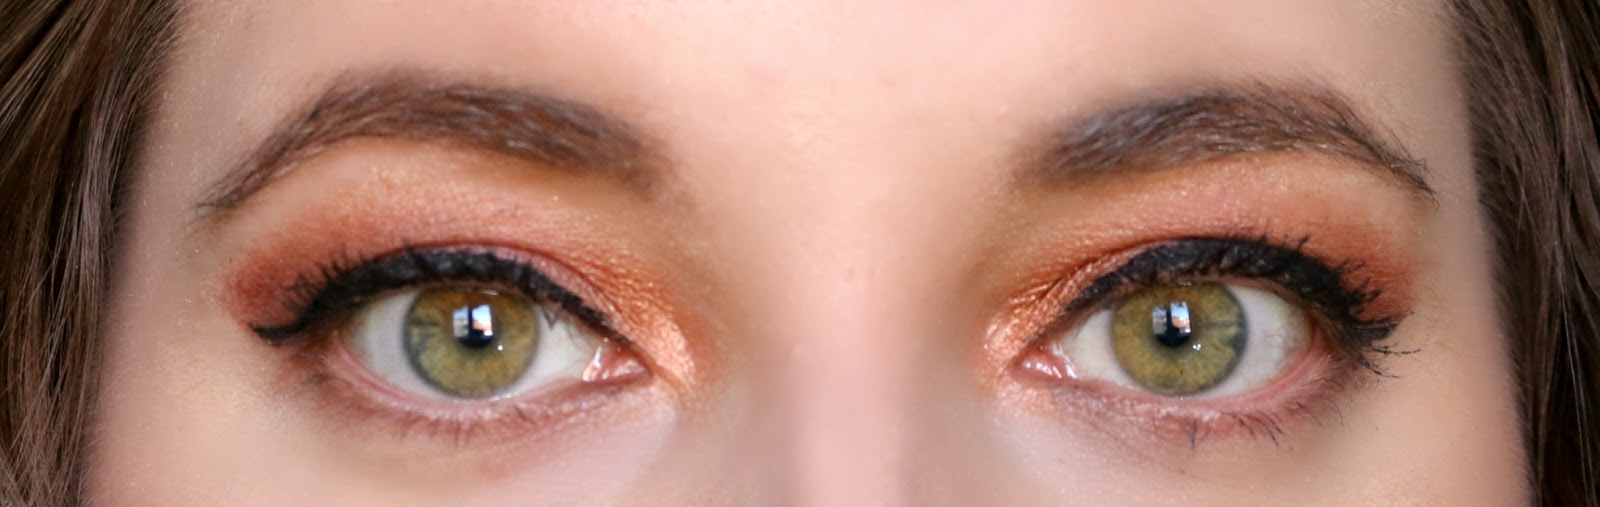 Valentine's Day Makeup Look Copper Rose Eyes